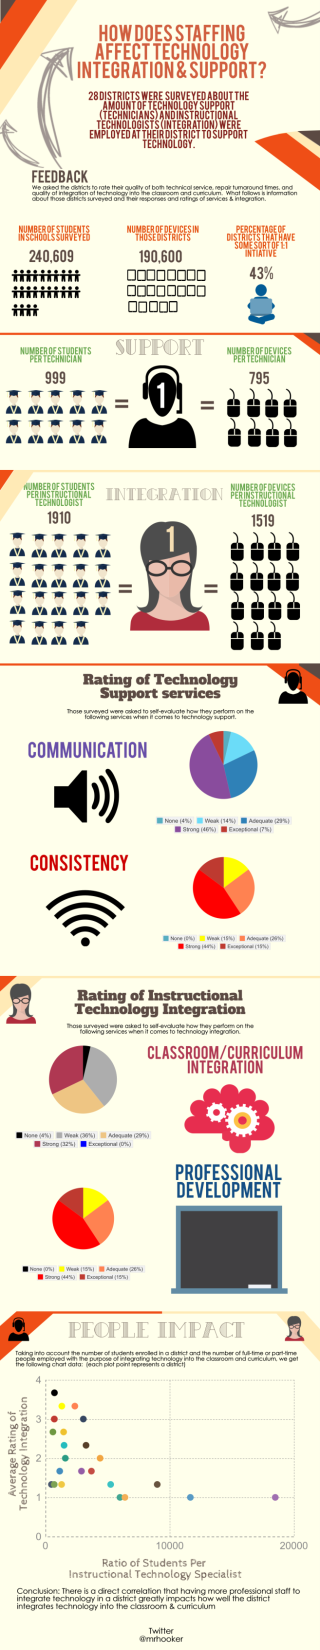 How Does Staffing Affect Technology Integration & Support?